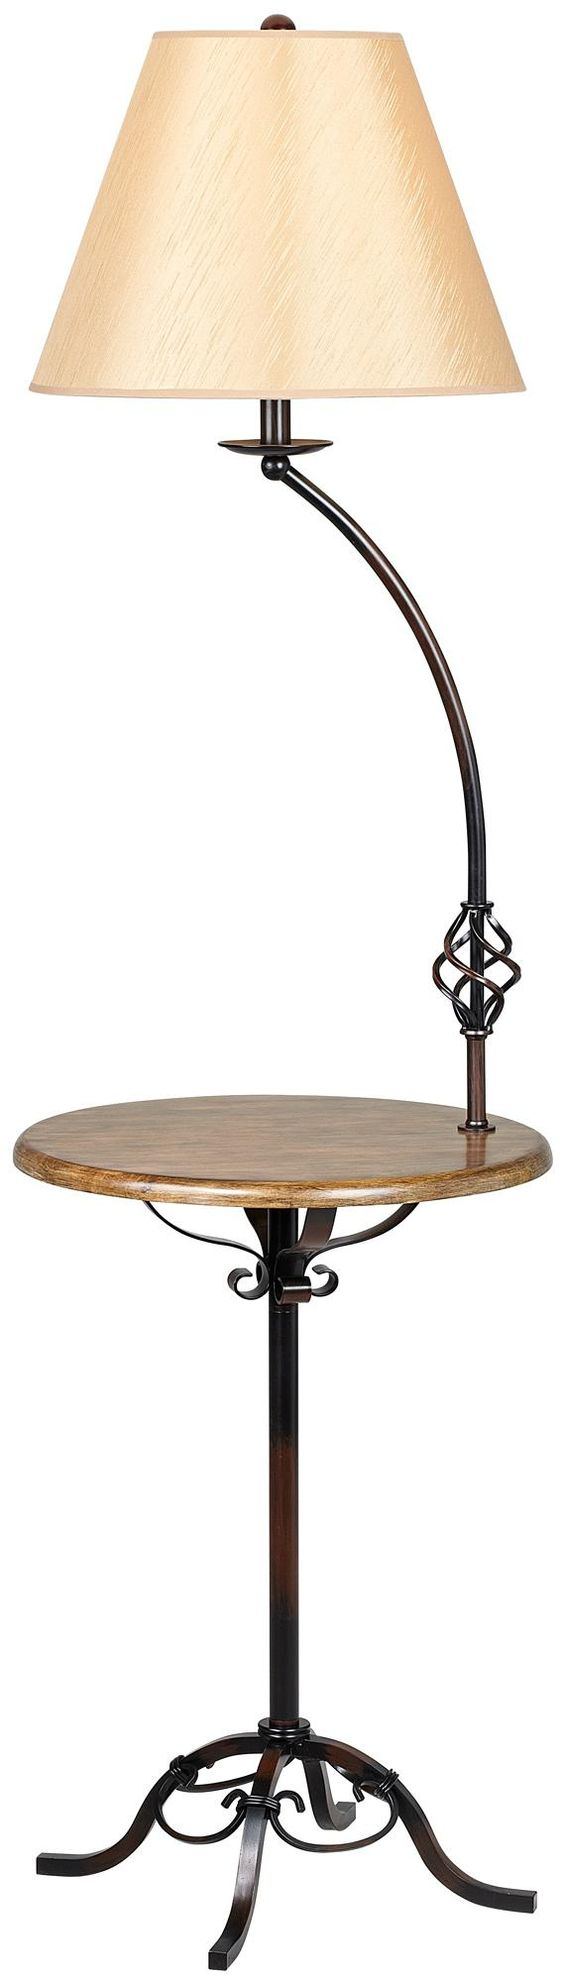 wrought iron wood tray table floor lamp wood tray tray tables and wrought. Black Bedroom Furniture Sets. Home Design Ideas